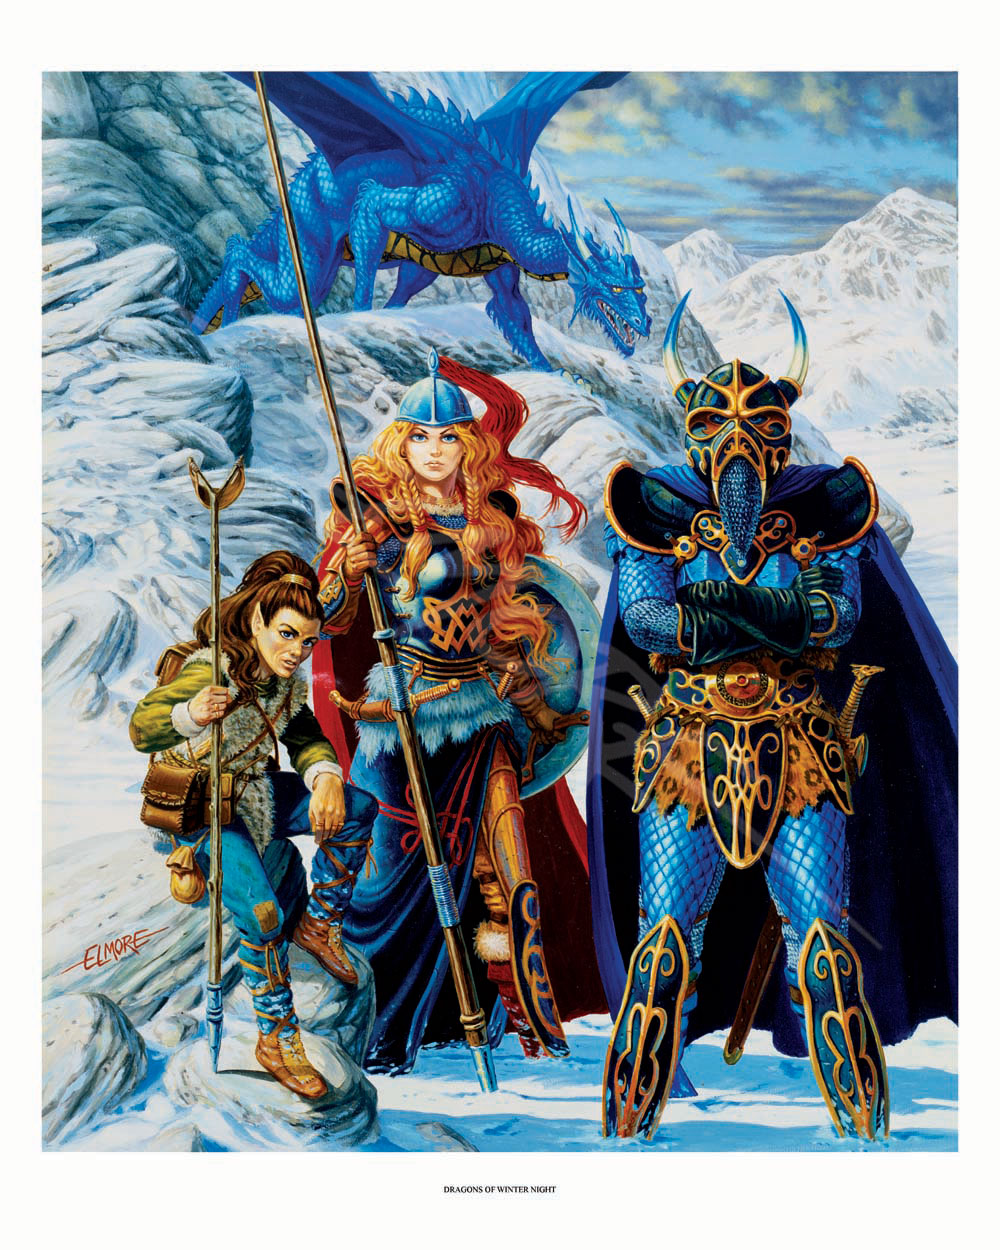 Dragonlance - Dragons Of Winter Night